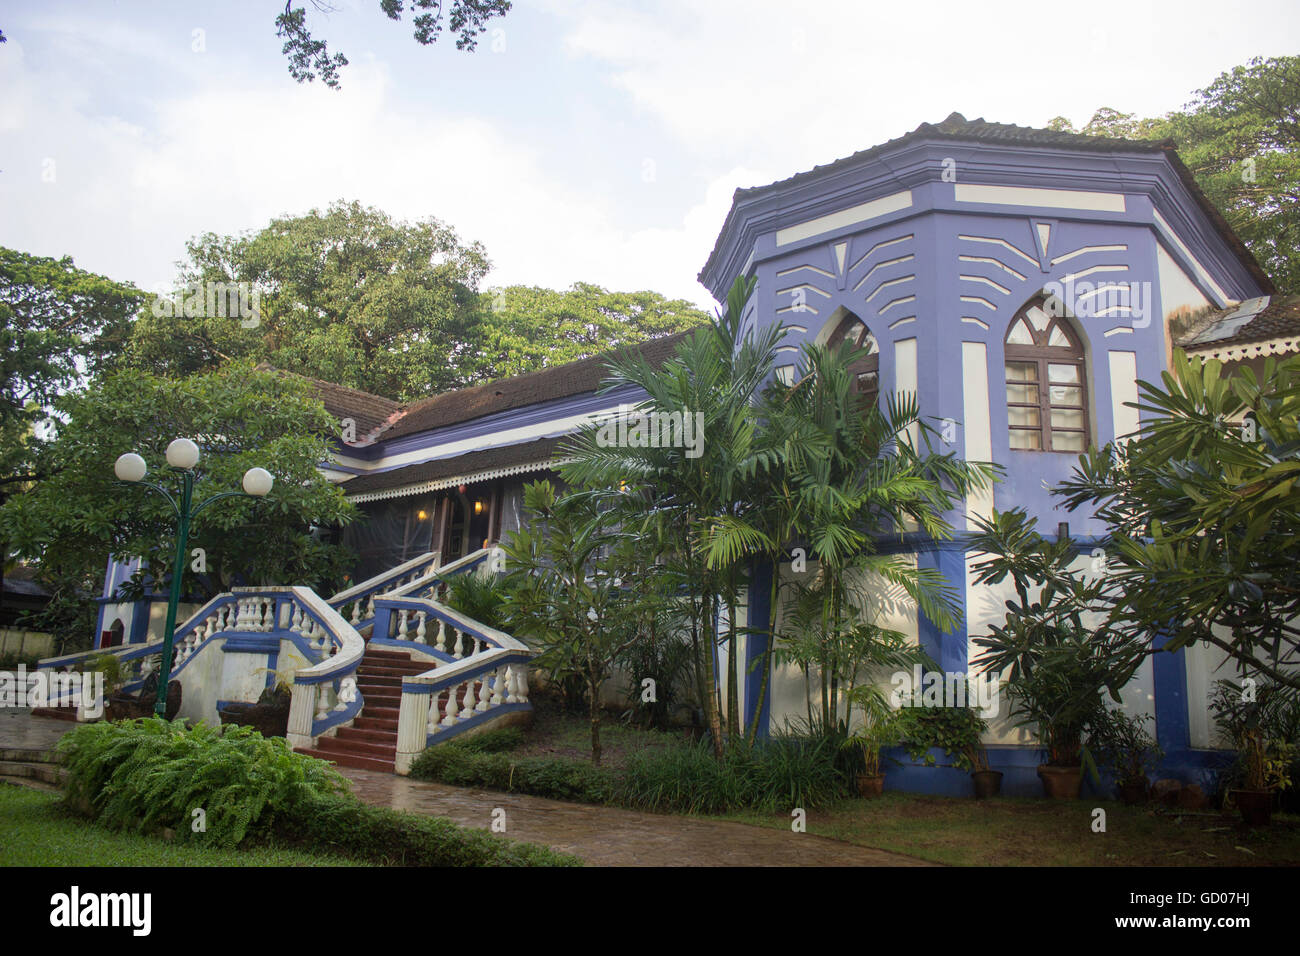 Sunapranta the place and seat of art and play in Panjim one of the best places for performing art - Stock Image